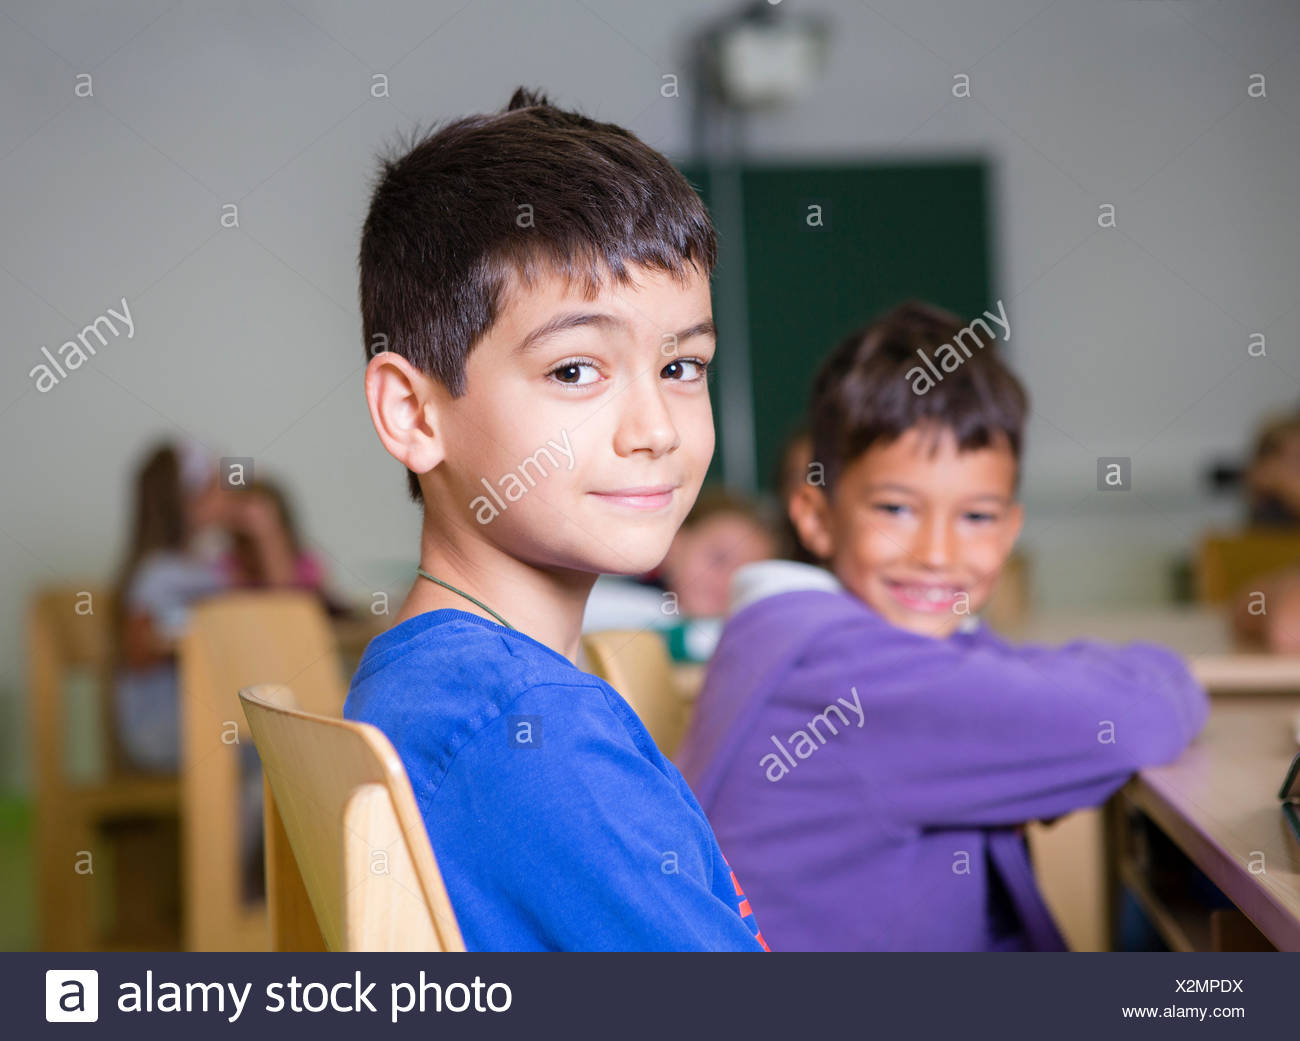 Elementary school children with an immigrant background sitting in a primary school class, Reith im Alpbachtal - Stock Image